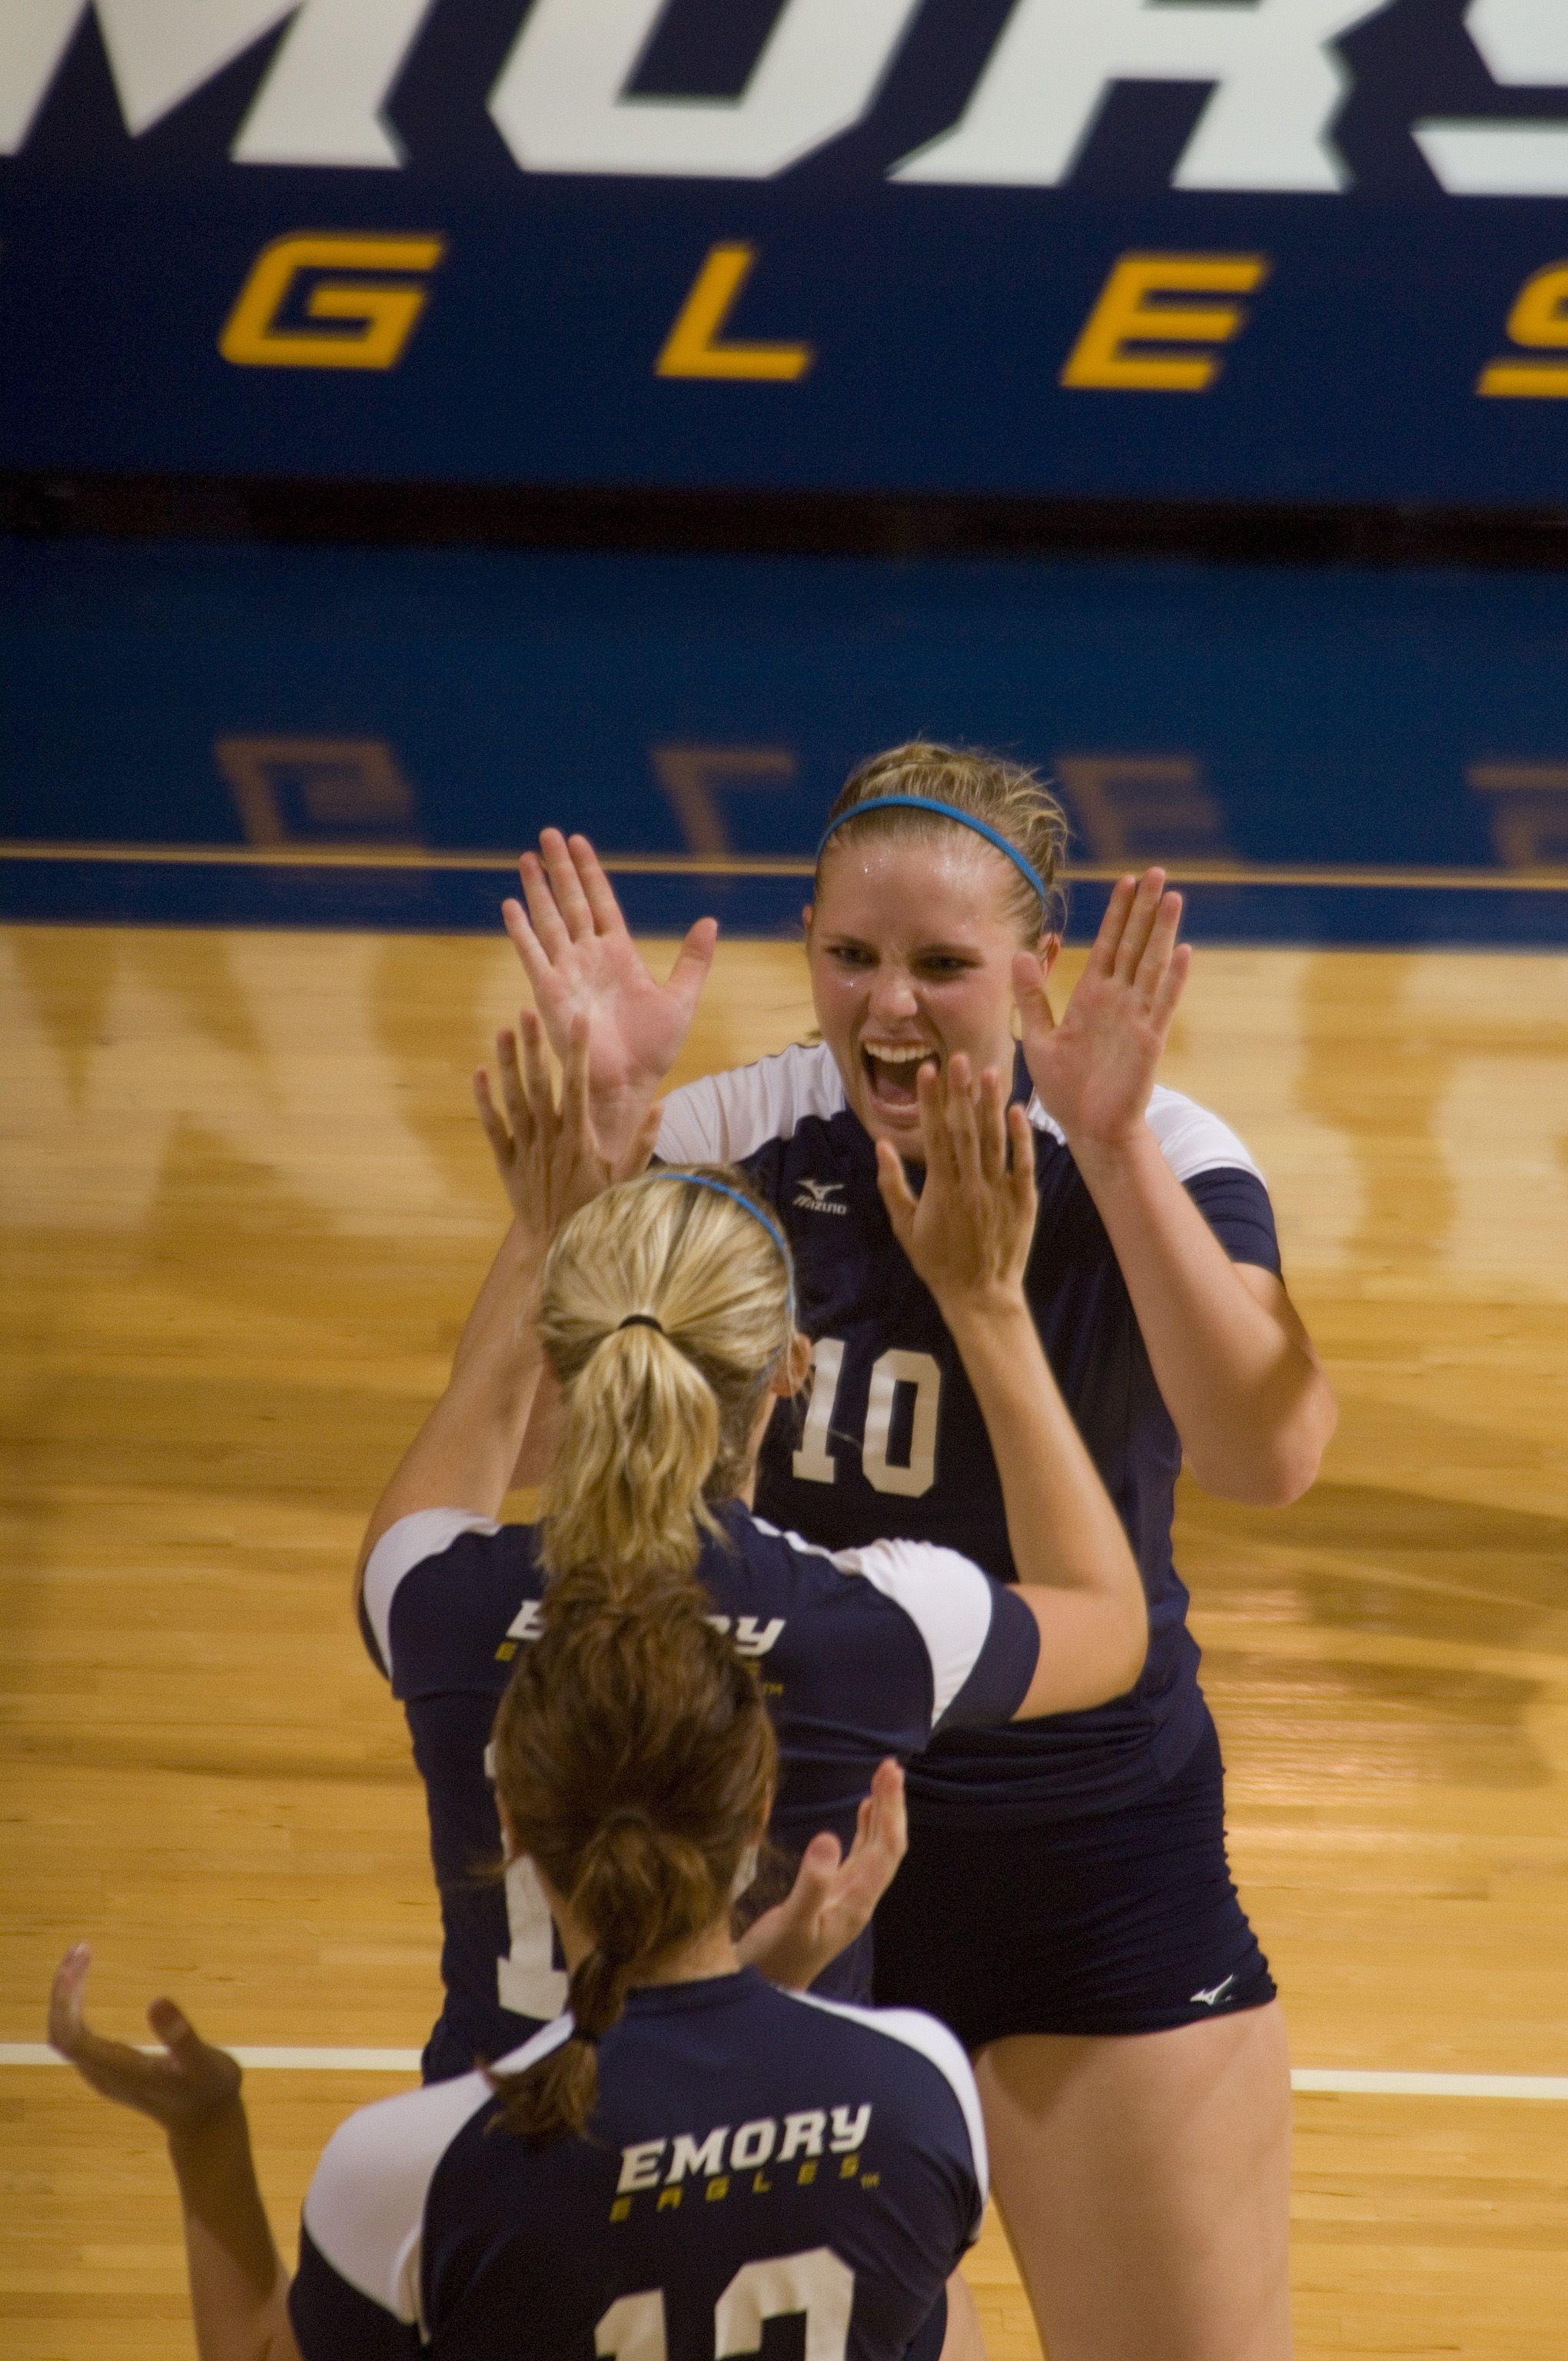 Freshman Dana Holt Celebrates A Great Win For The Emory Volleyball Team